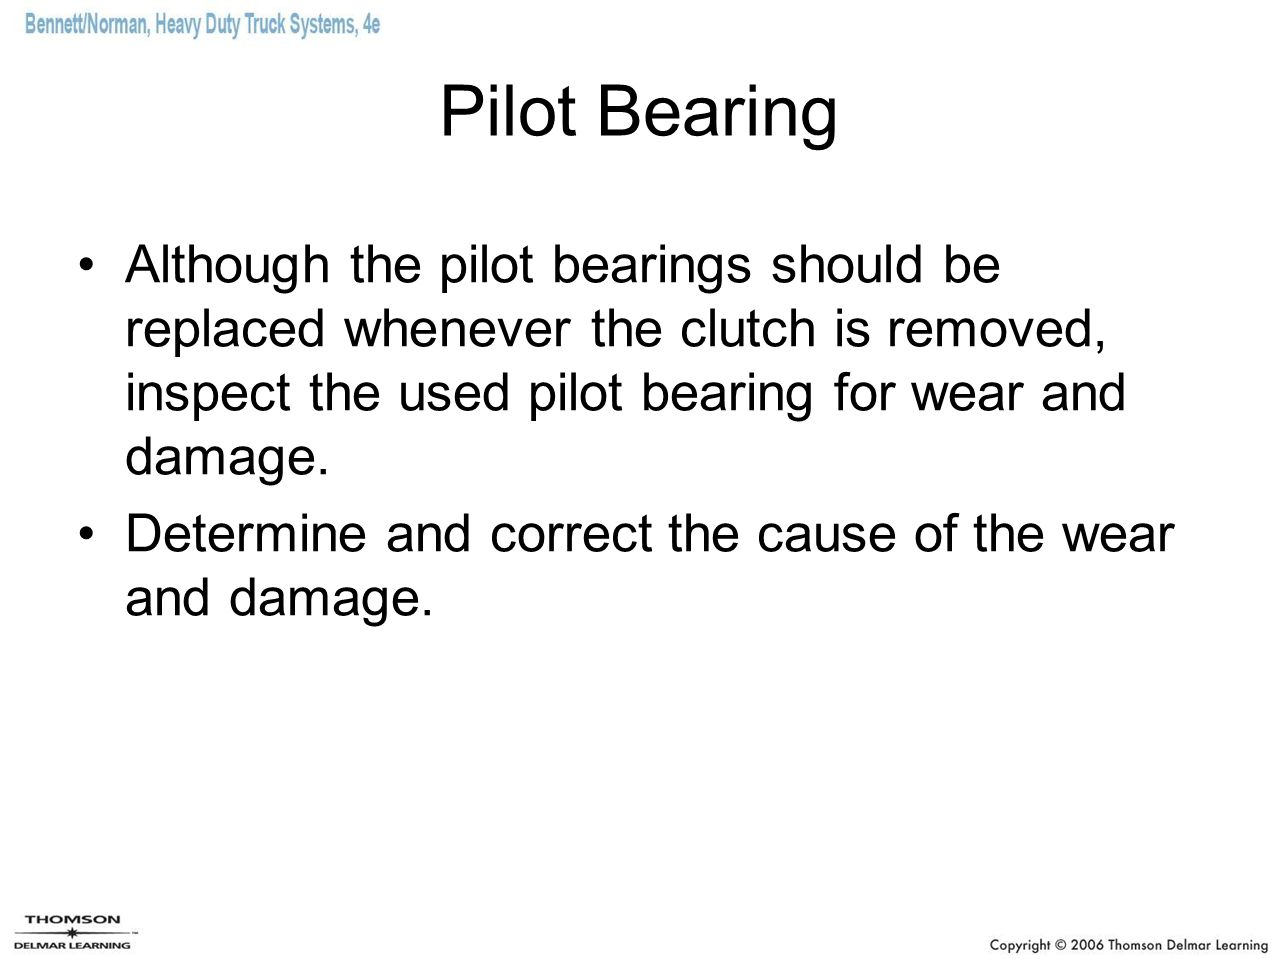 Pilot Bearing Although the pilot bearings should be replaced whenever the clutch is removed, inspect the used pilot bearing for wear and damage.